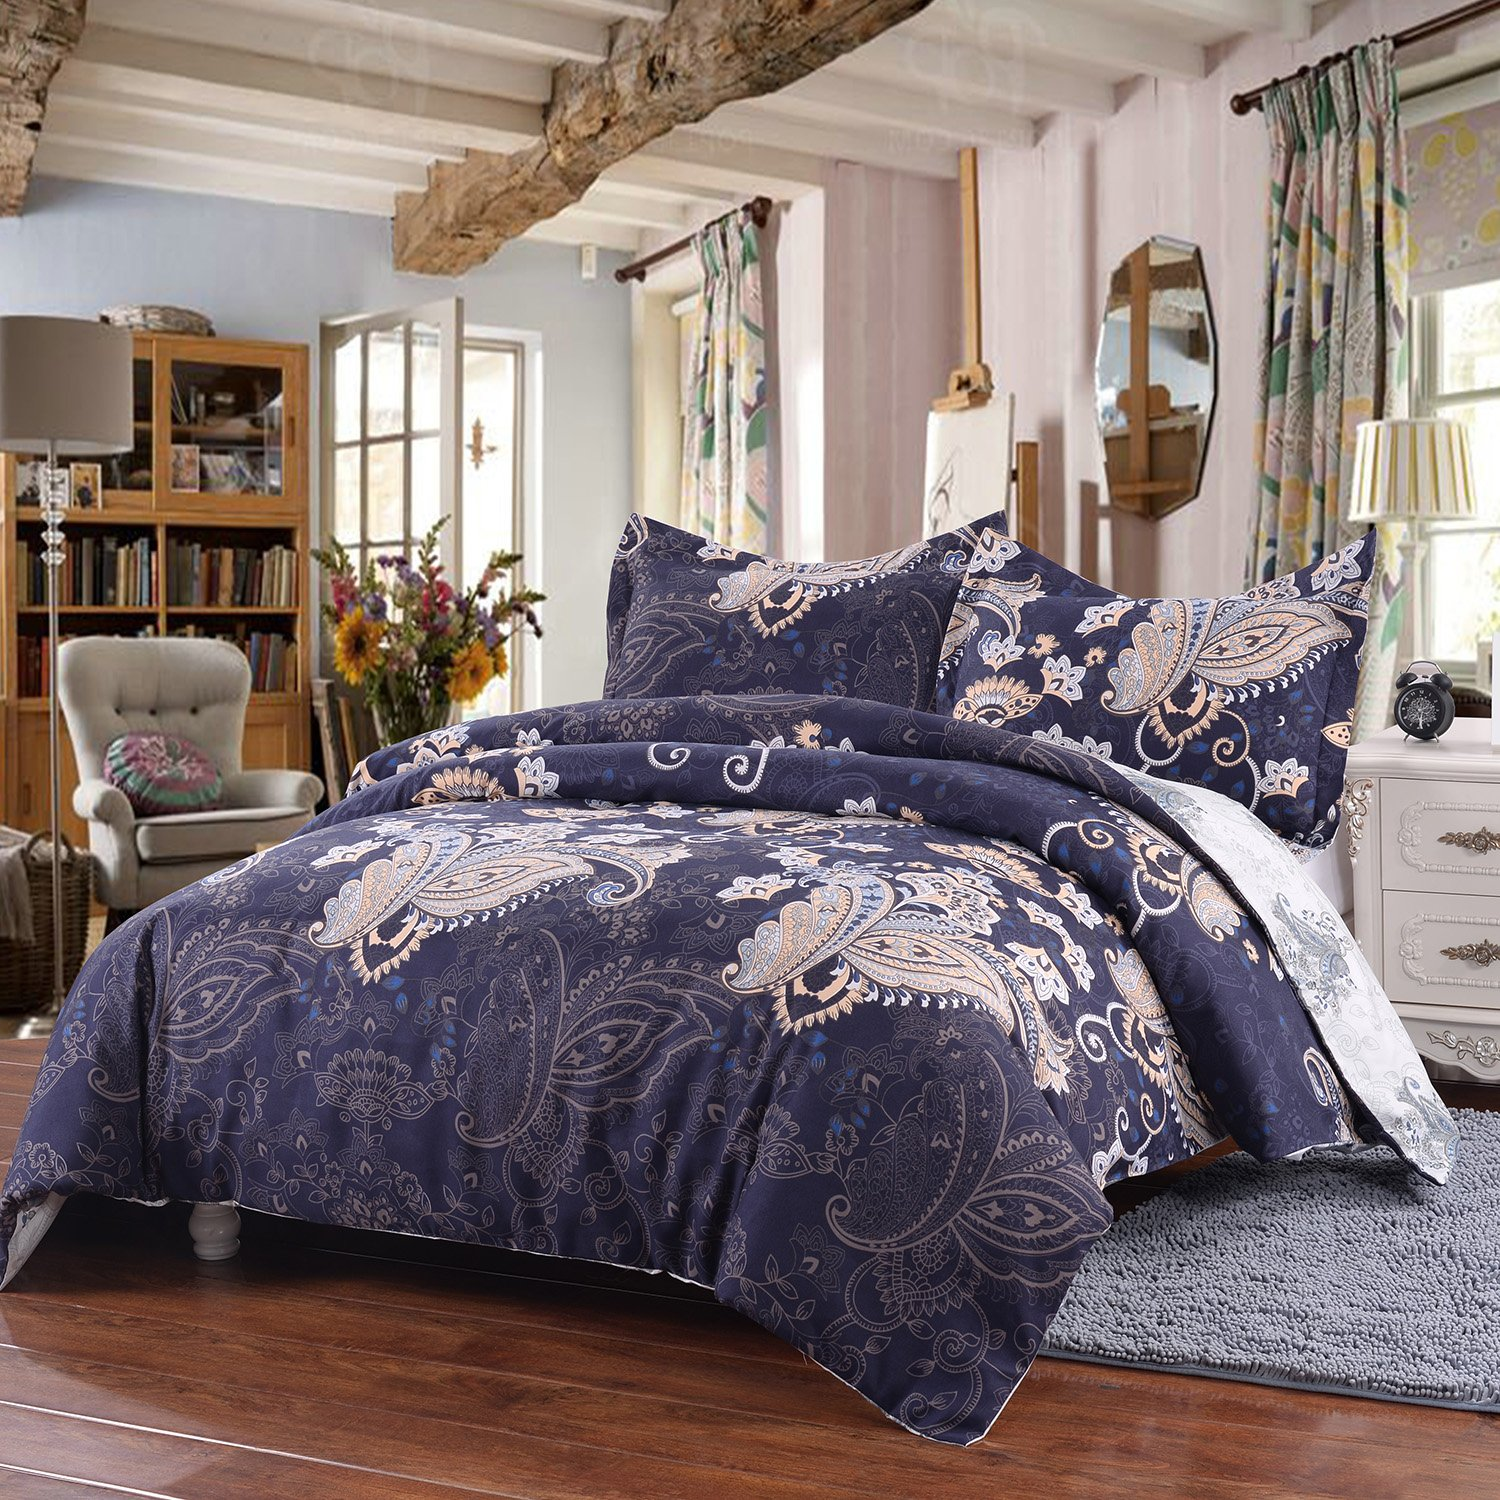 Simple&Opulence Microfiber 3 Piece Navy Palace Peacock Pattern Bedding Floral Duvet Cover Set (King